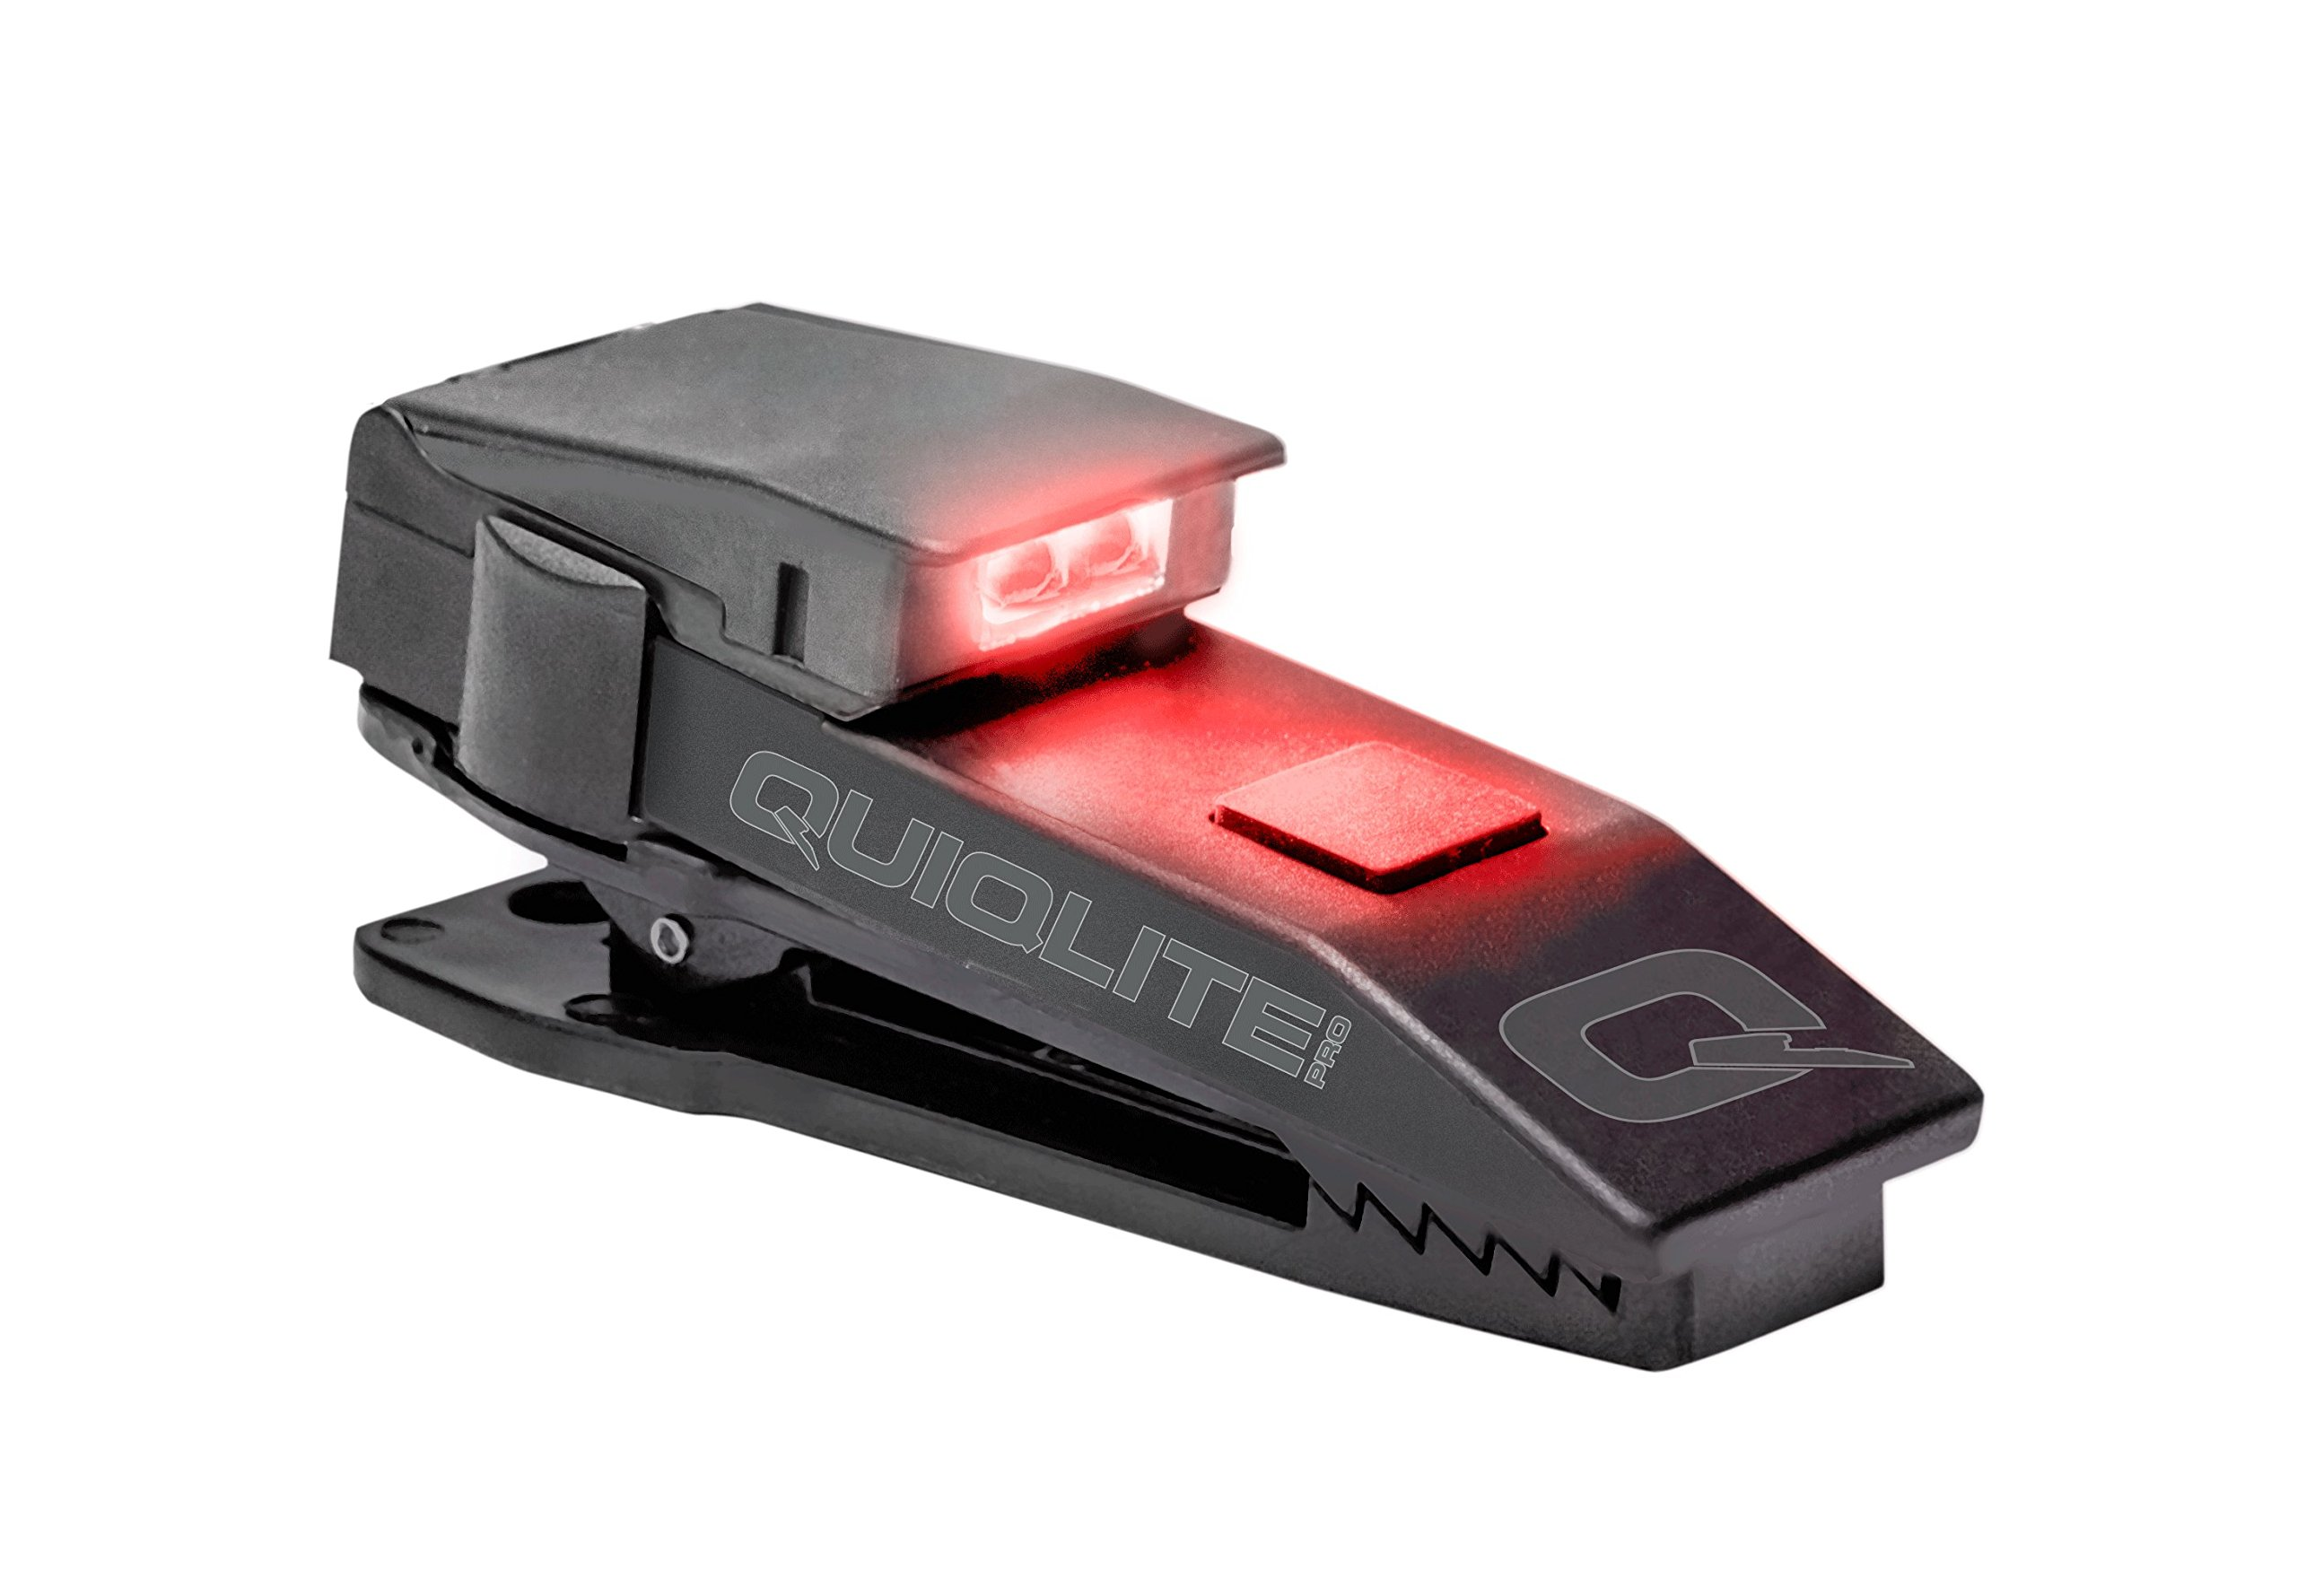 QuiqLitePro Hands Free Pocket Concealable Flashlight / White/Red LED's, 10 Lumens